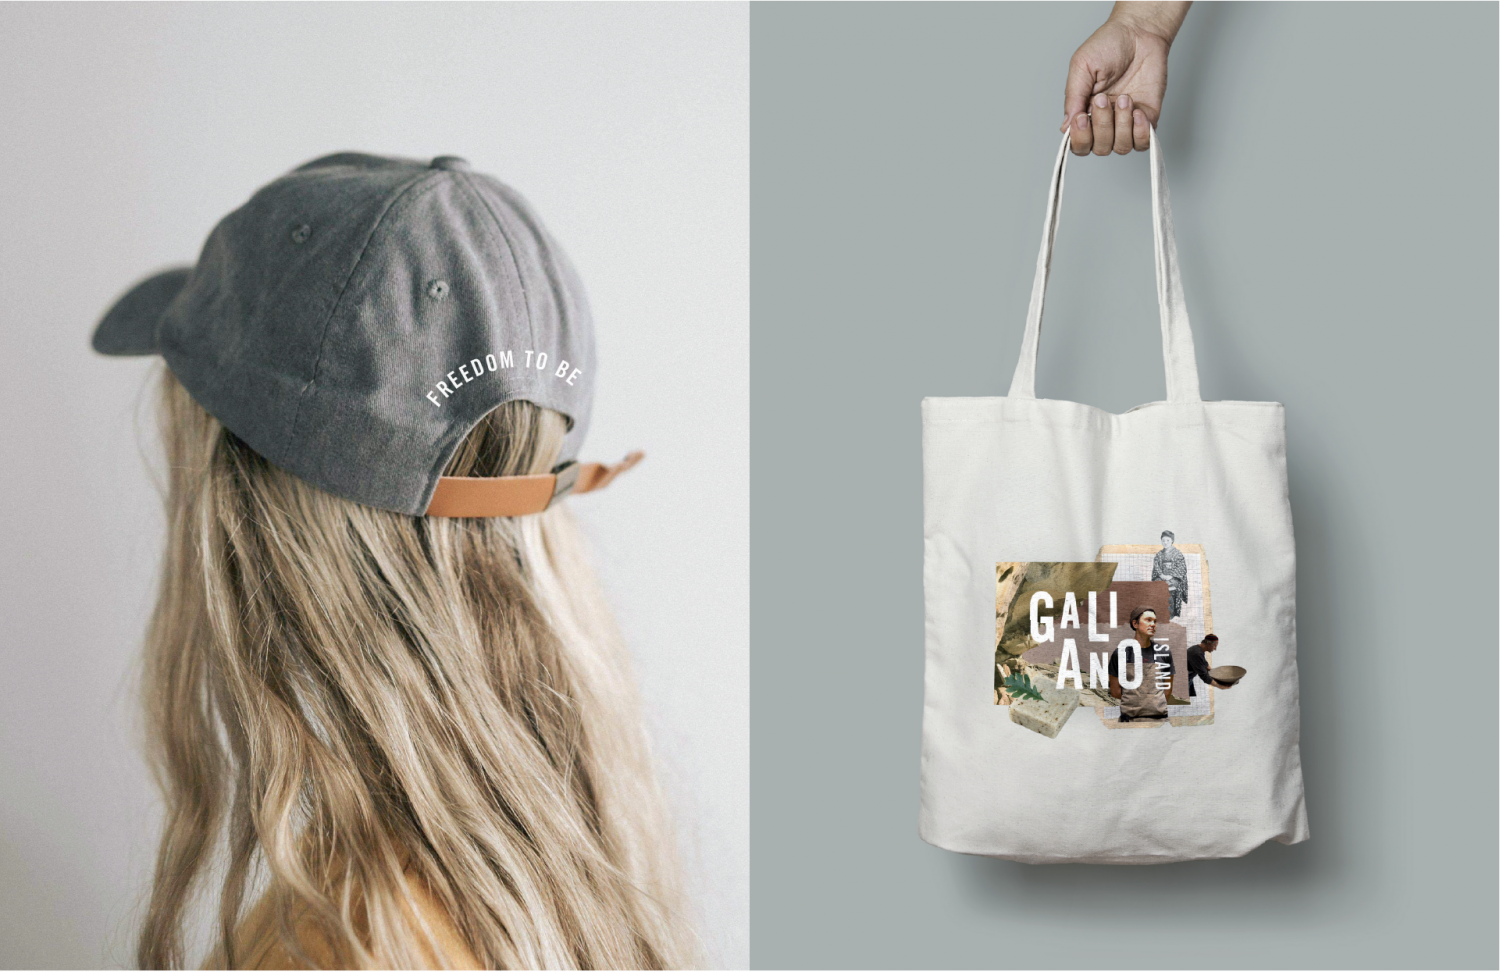 """Hat mockup with """"Freedom to be"""" and bag mockup with Galiano Island Collage"""